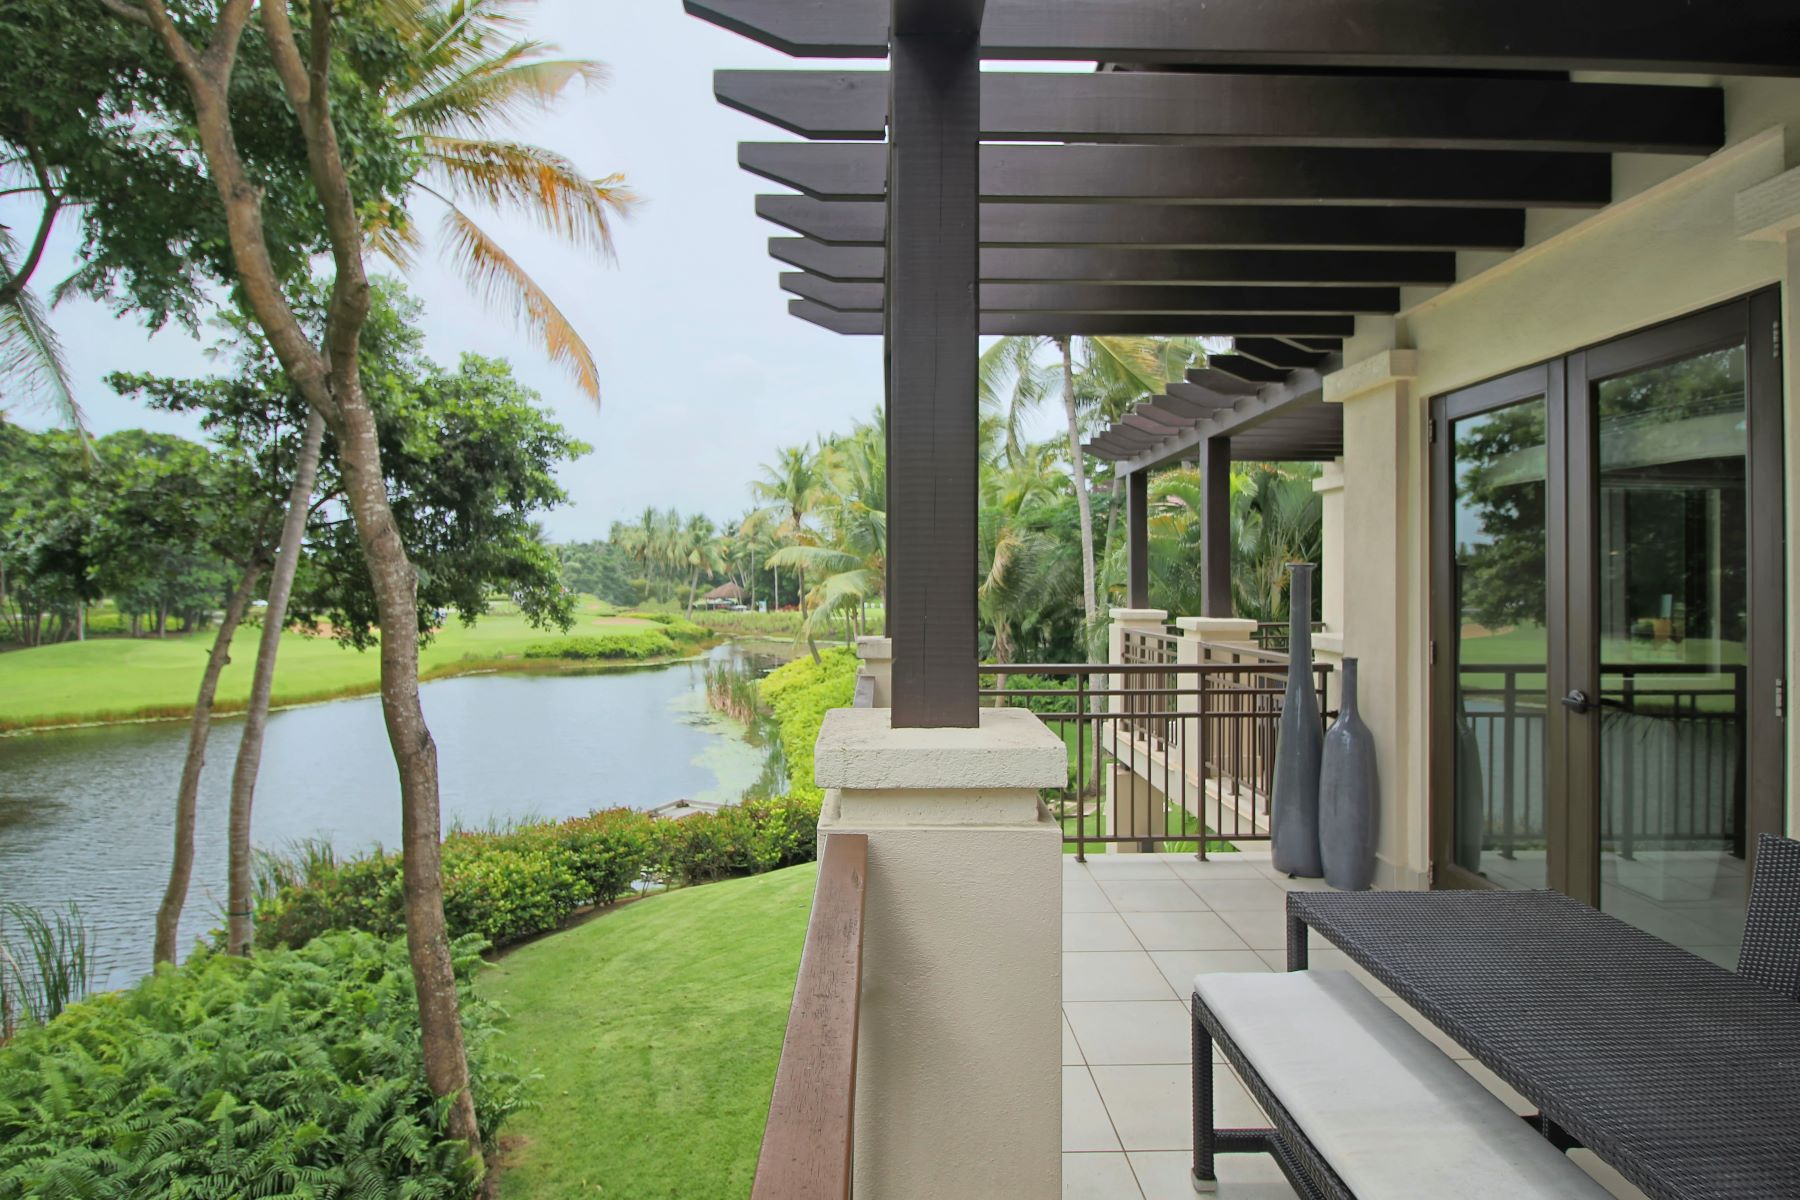 House for Sale at Lakefront with Golf Views Villa State Rd. 187, Km. 4.2 Apt. 1206 Bahia Beach, 00745 Puerto Rico